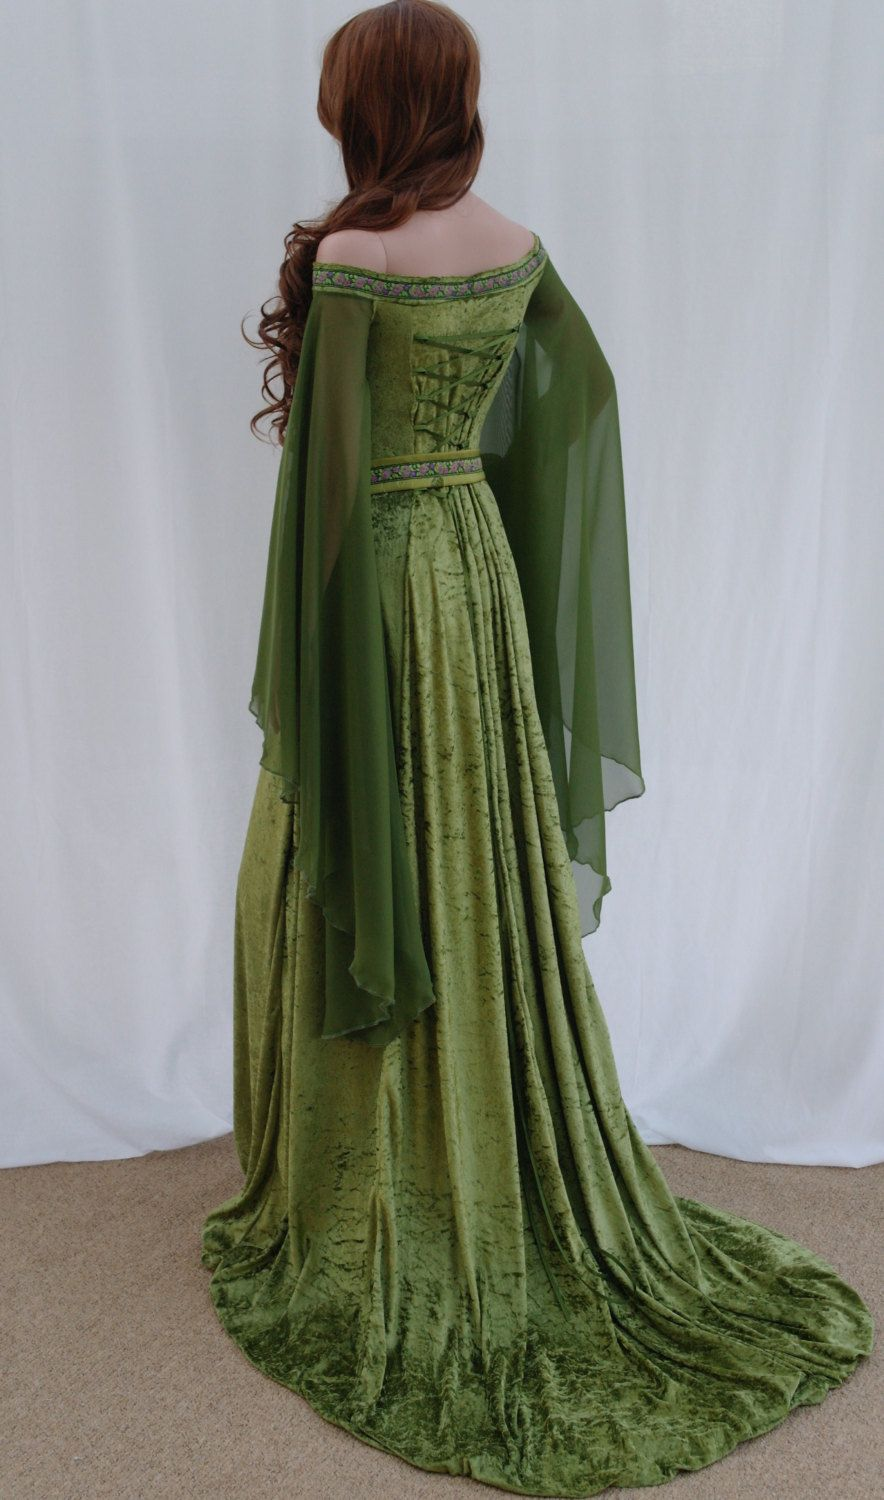 Fabulous elven style gown handmade by me for you to fit you